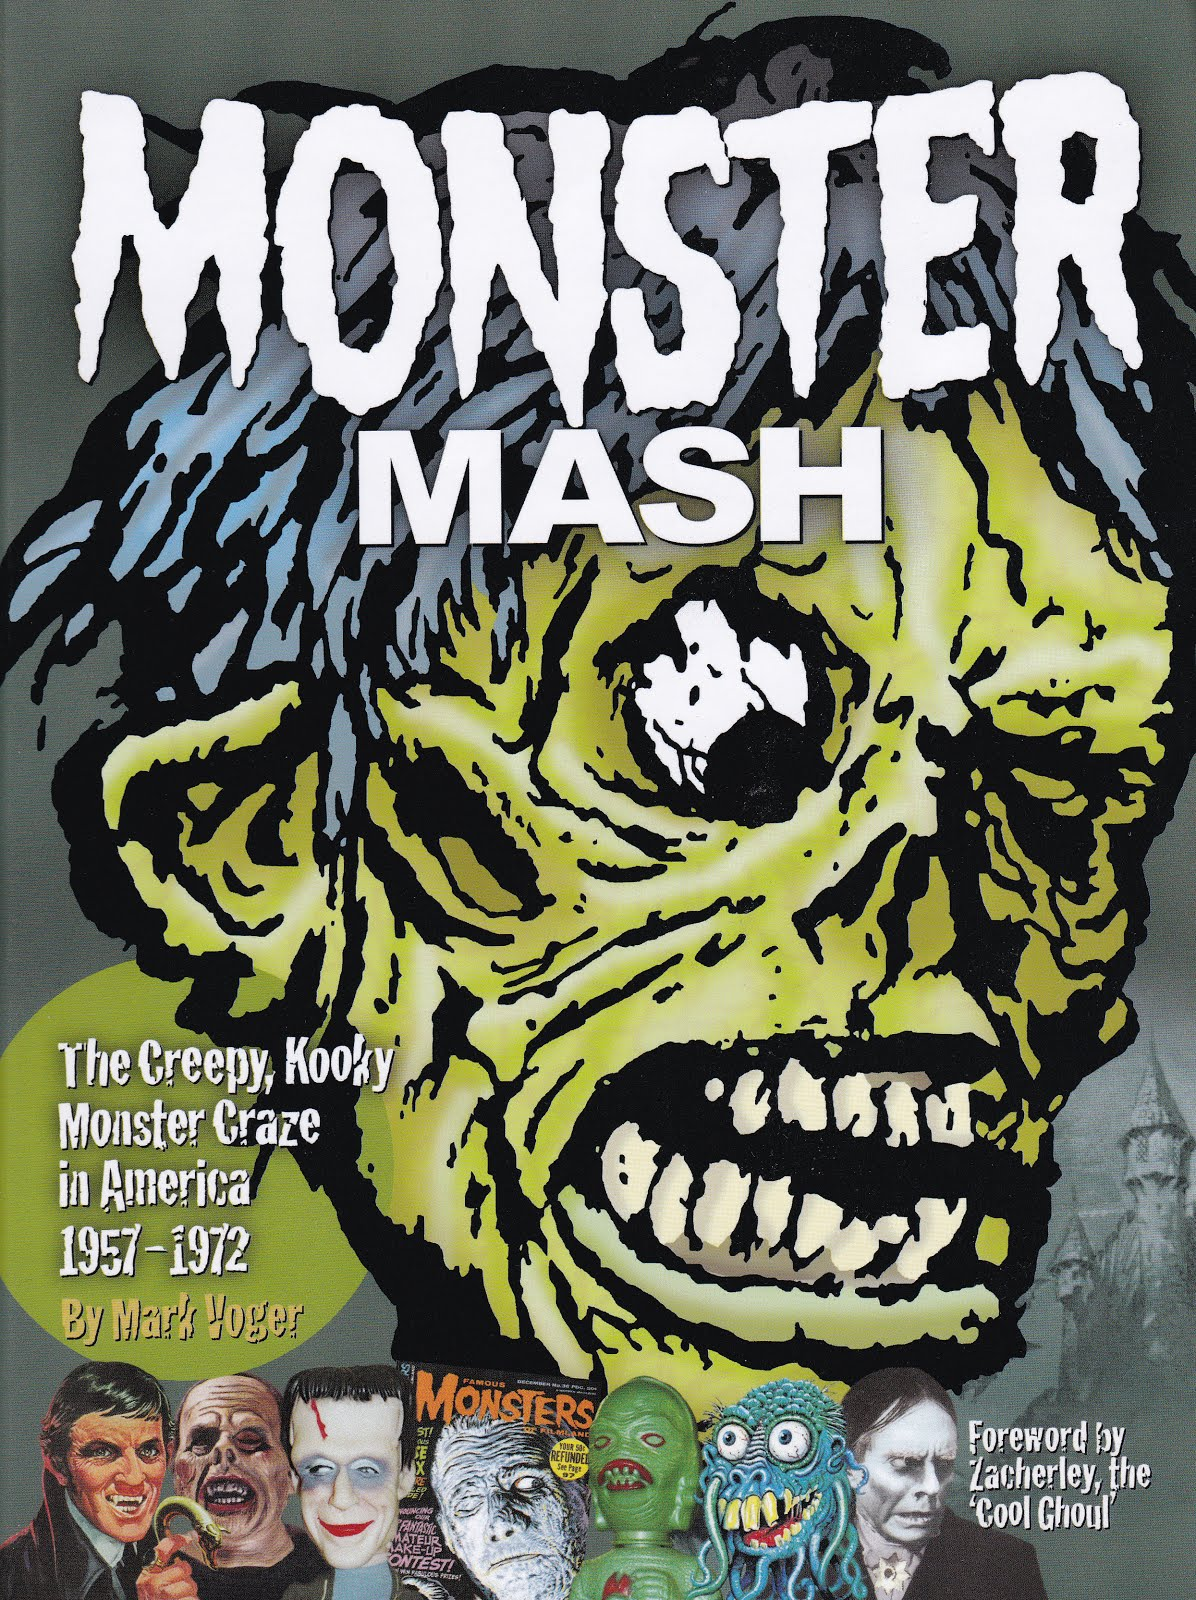 MARK VOGER'S MONSTER MASH